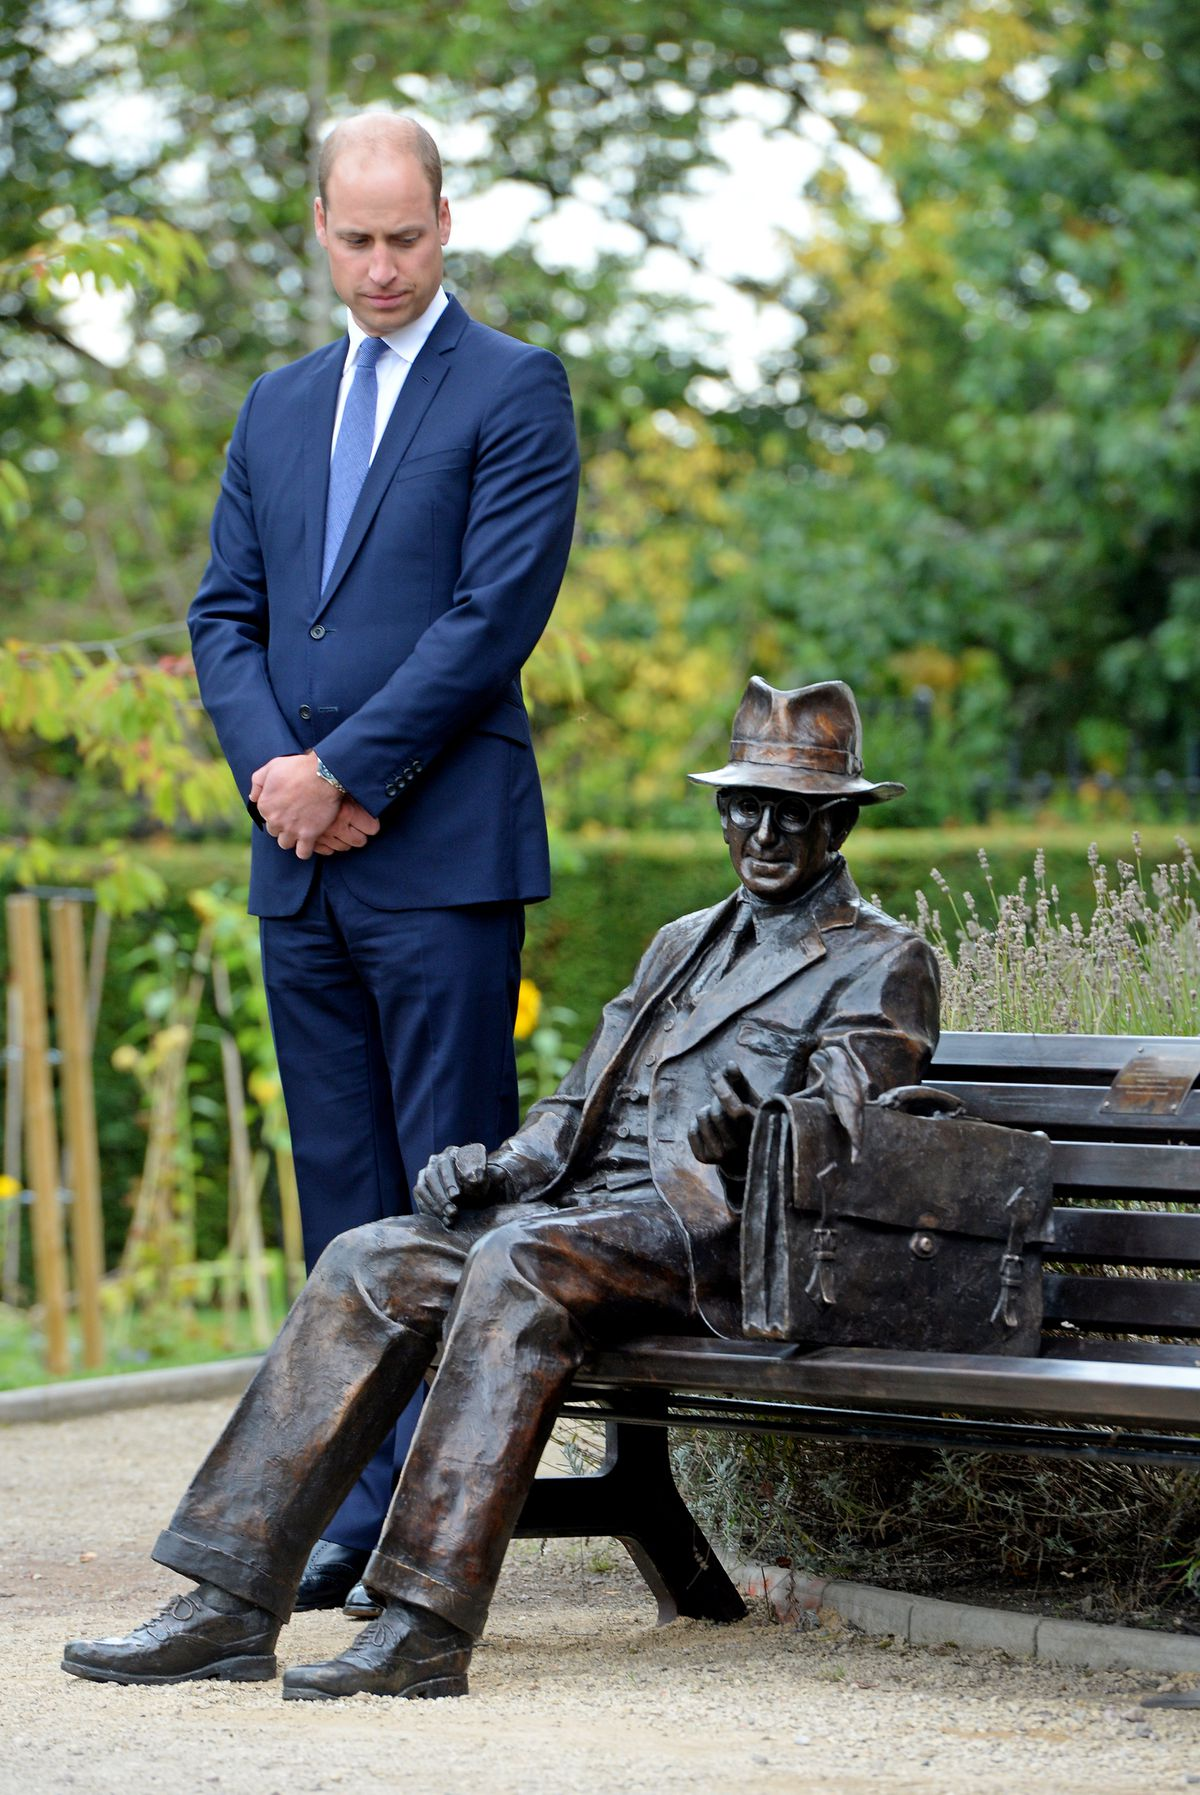 Prince William and the Frank Foley statue